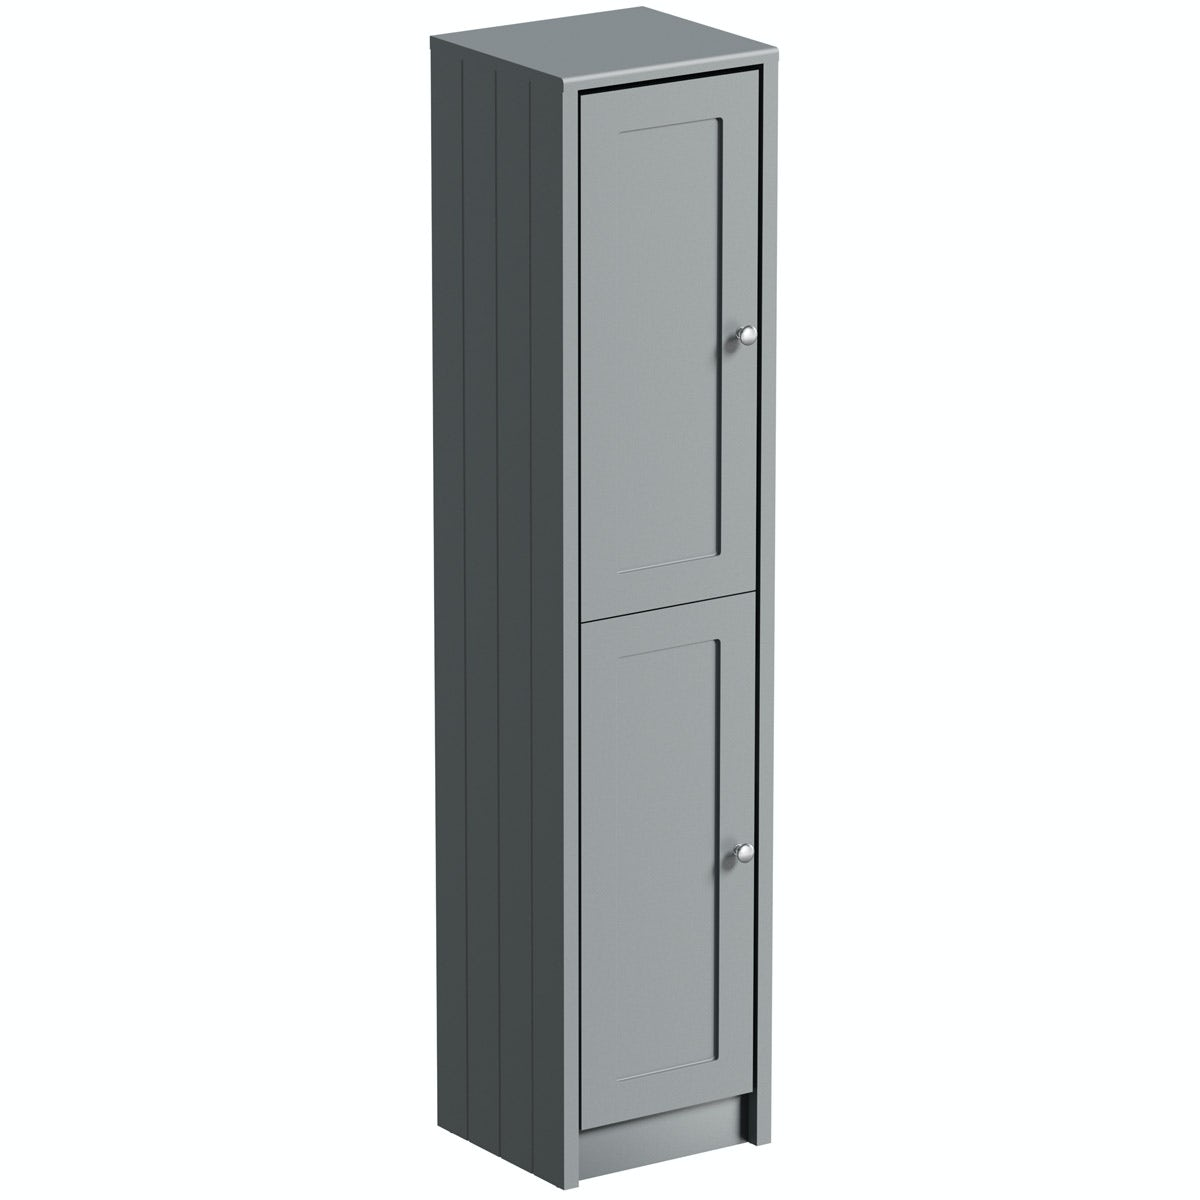 The Bath Co. Dulwich stone grey tall storage unit